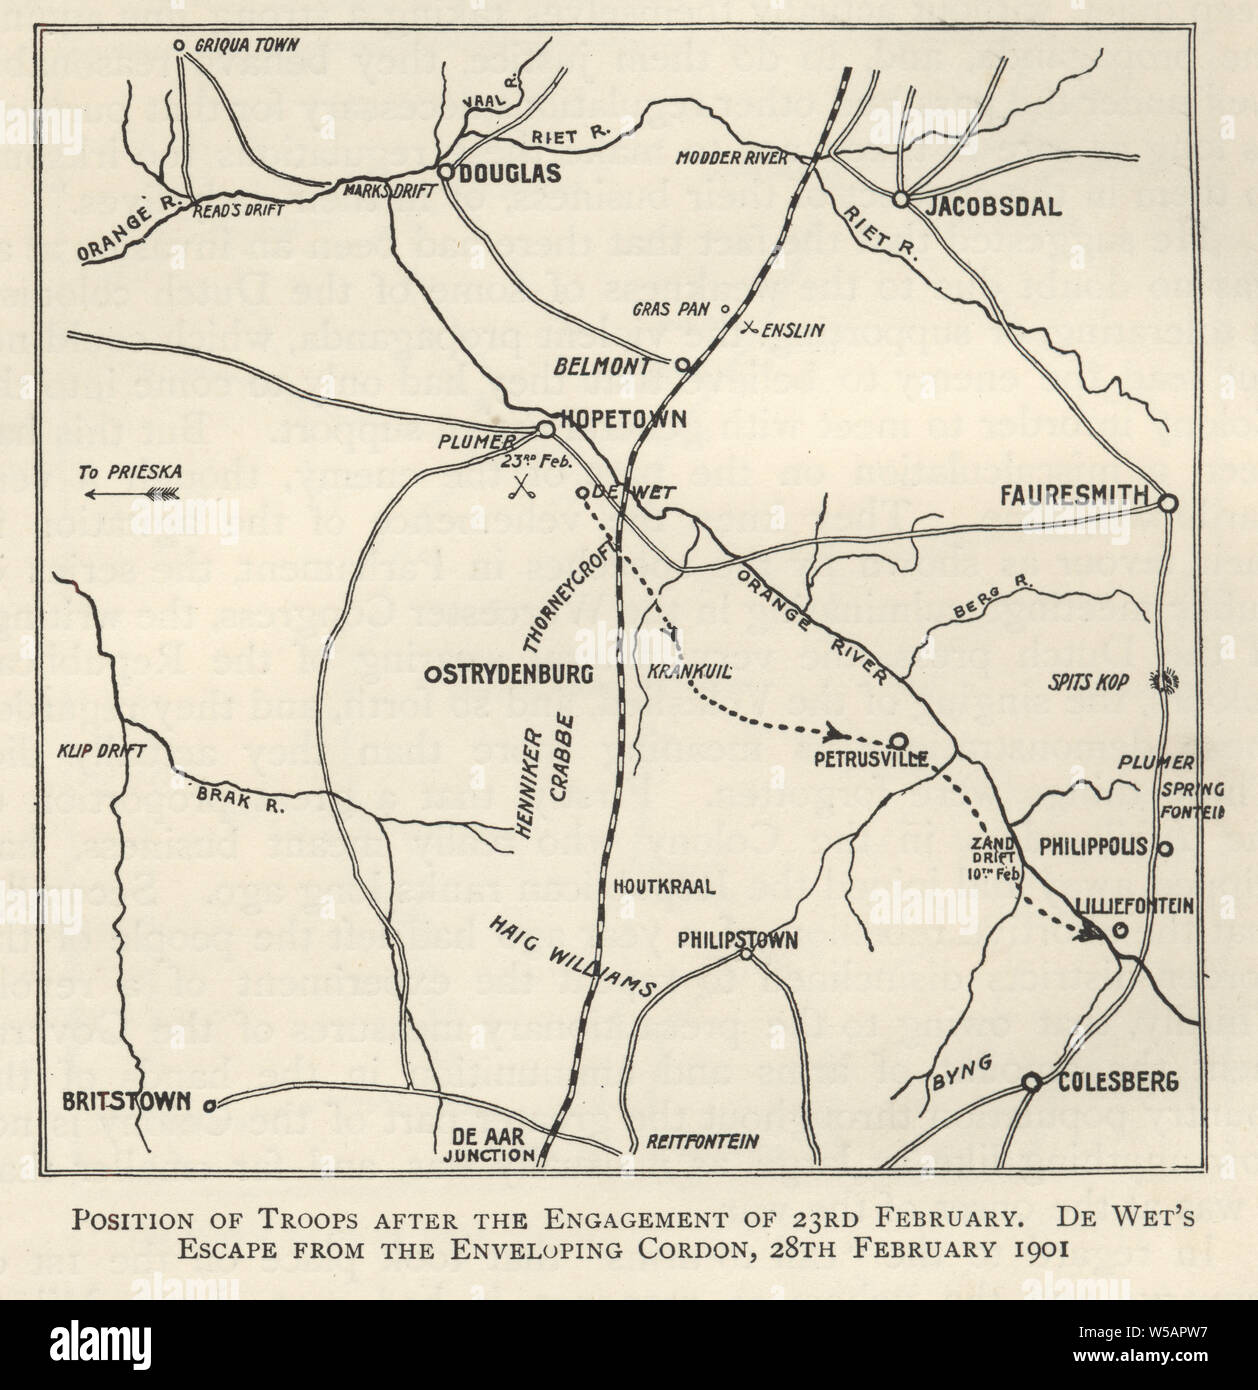 Map from the Second Boer War, Position of troops after the engagment of 23rd February 1901.  De Wt's escape from the enveloping cordon, 28th February 1901 Stock Photo